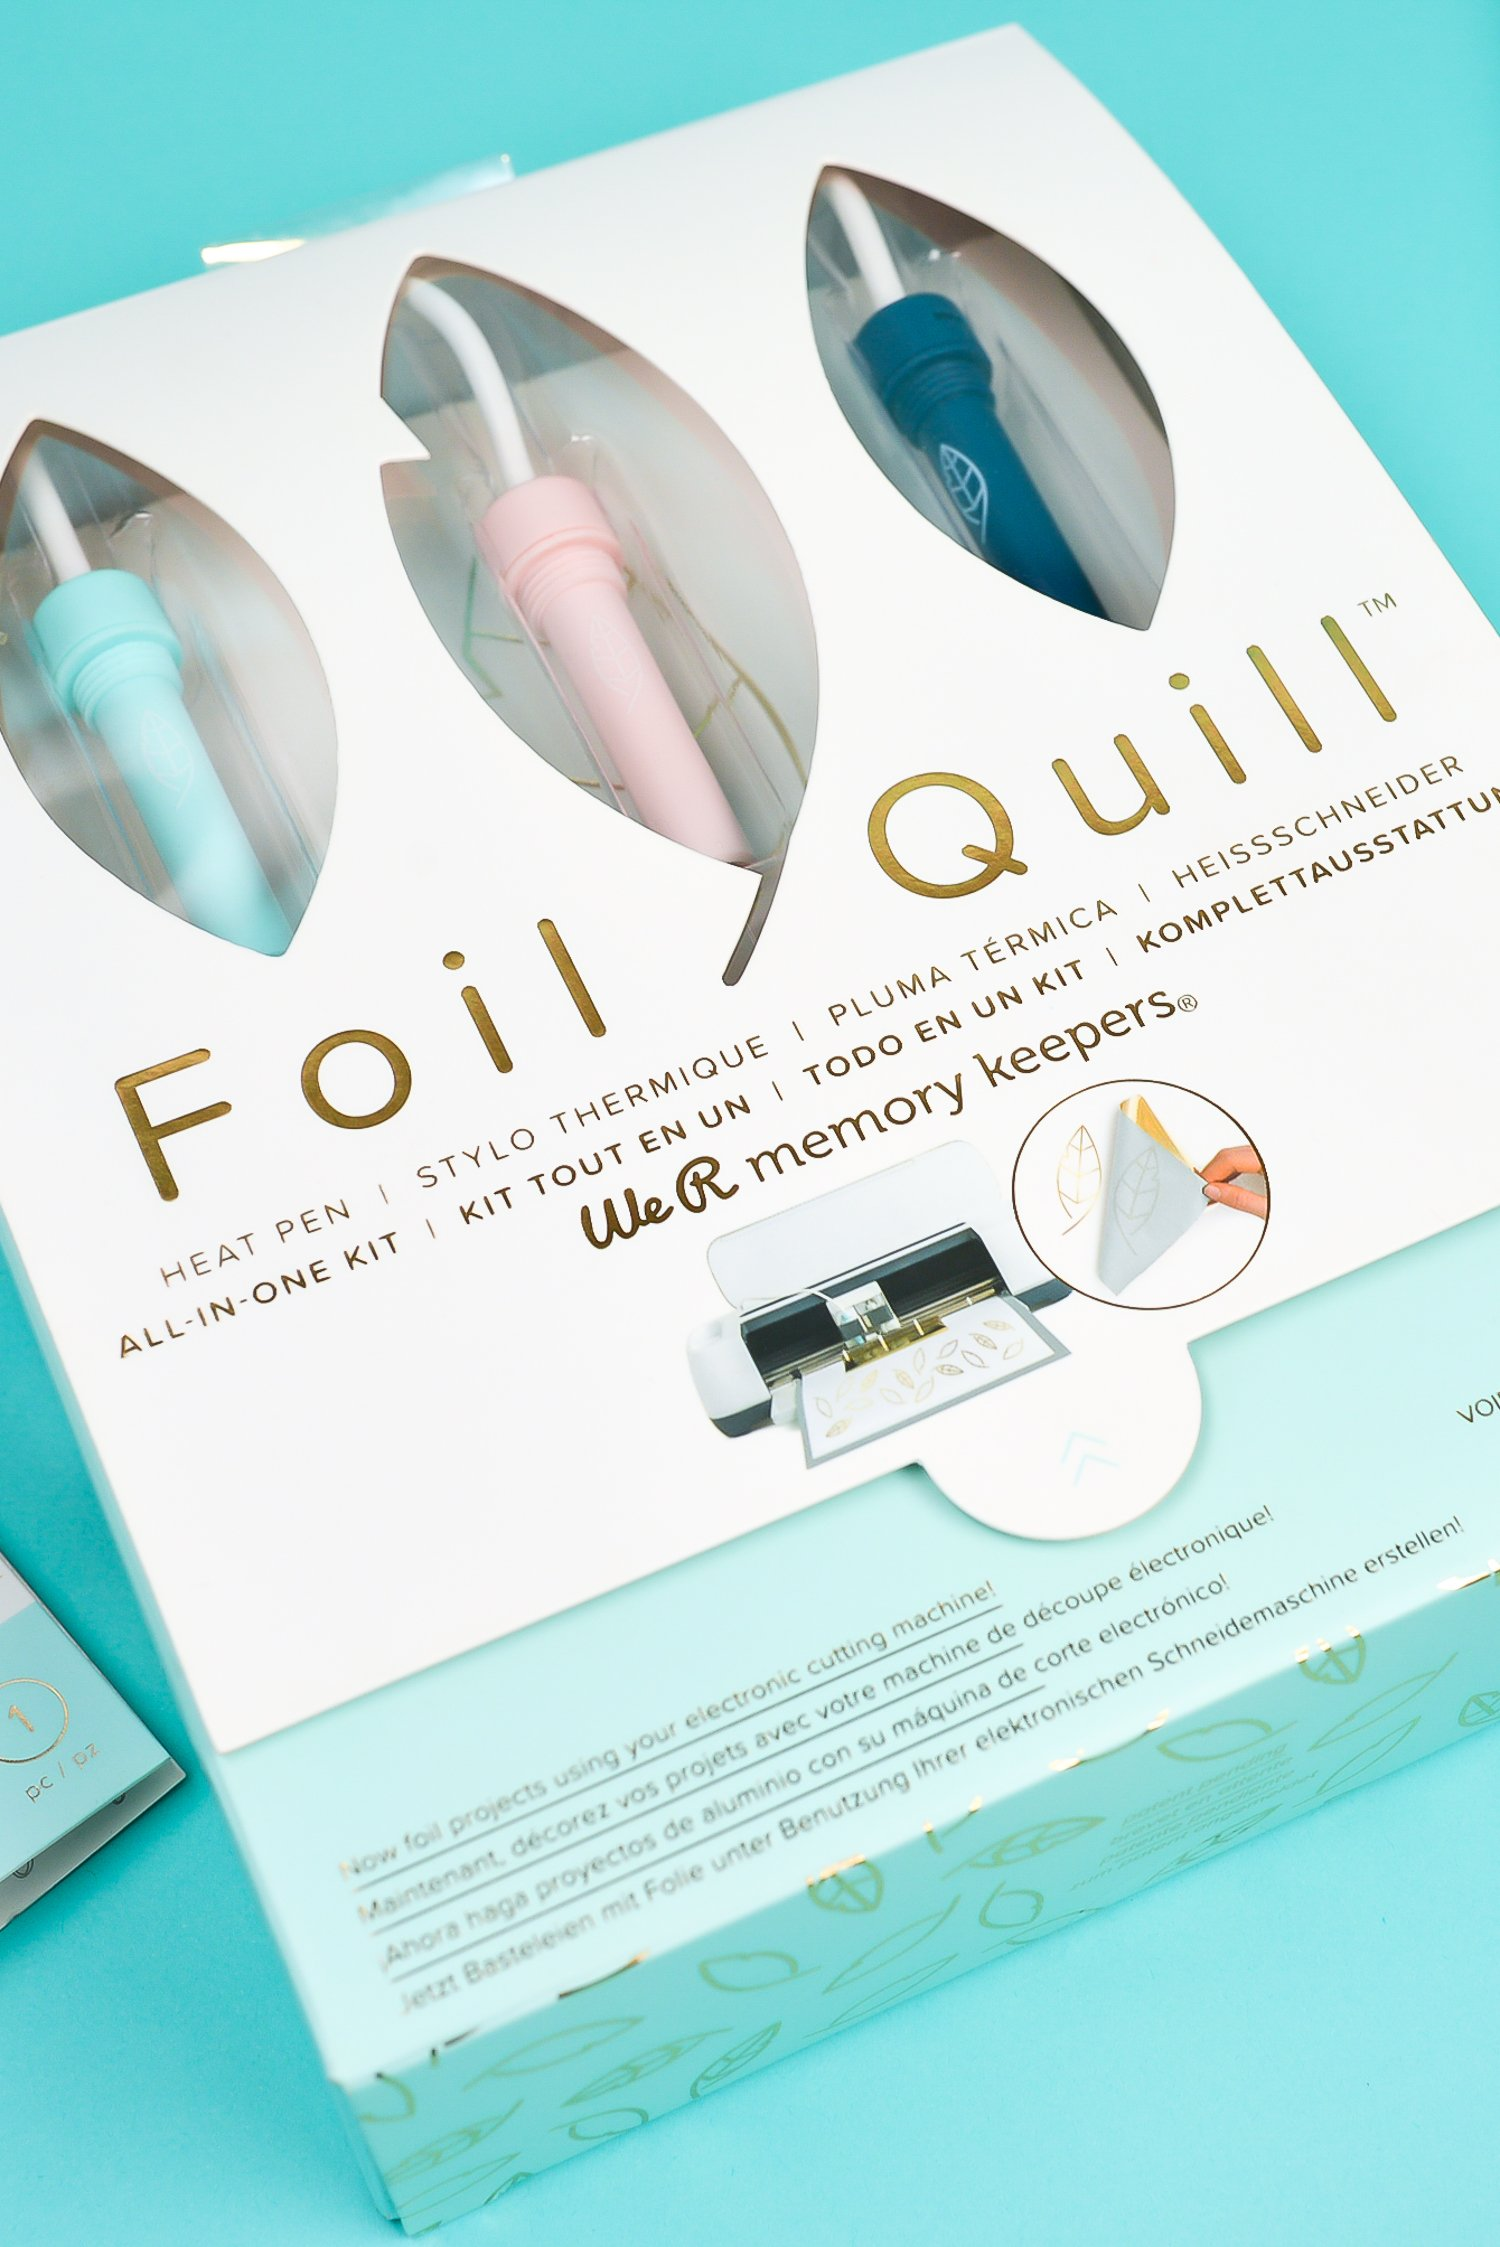 Take your cutting machine crafts to the next level with the Foil Quill! What is the Foil Quill? It's a revolutionary heating tool that works in all major cutting machines to beautifully foil projects on a variety of materials! Here are all the details about this awesome new tool.